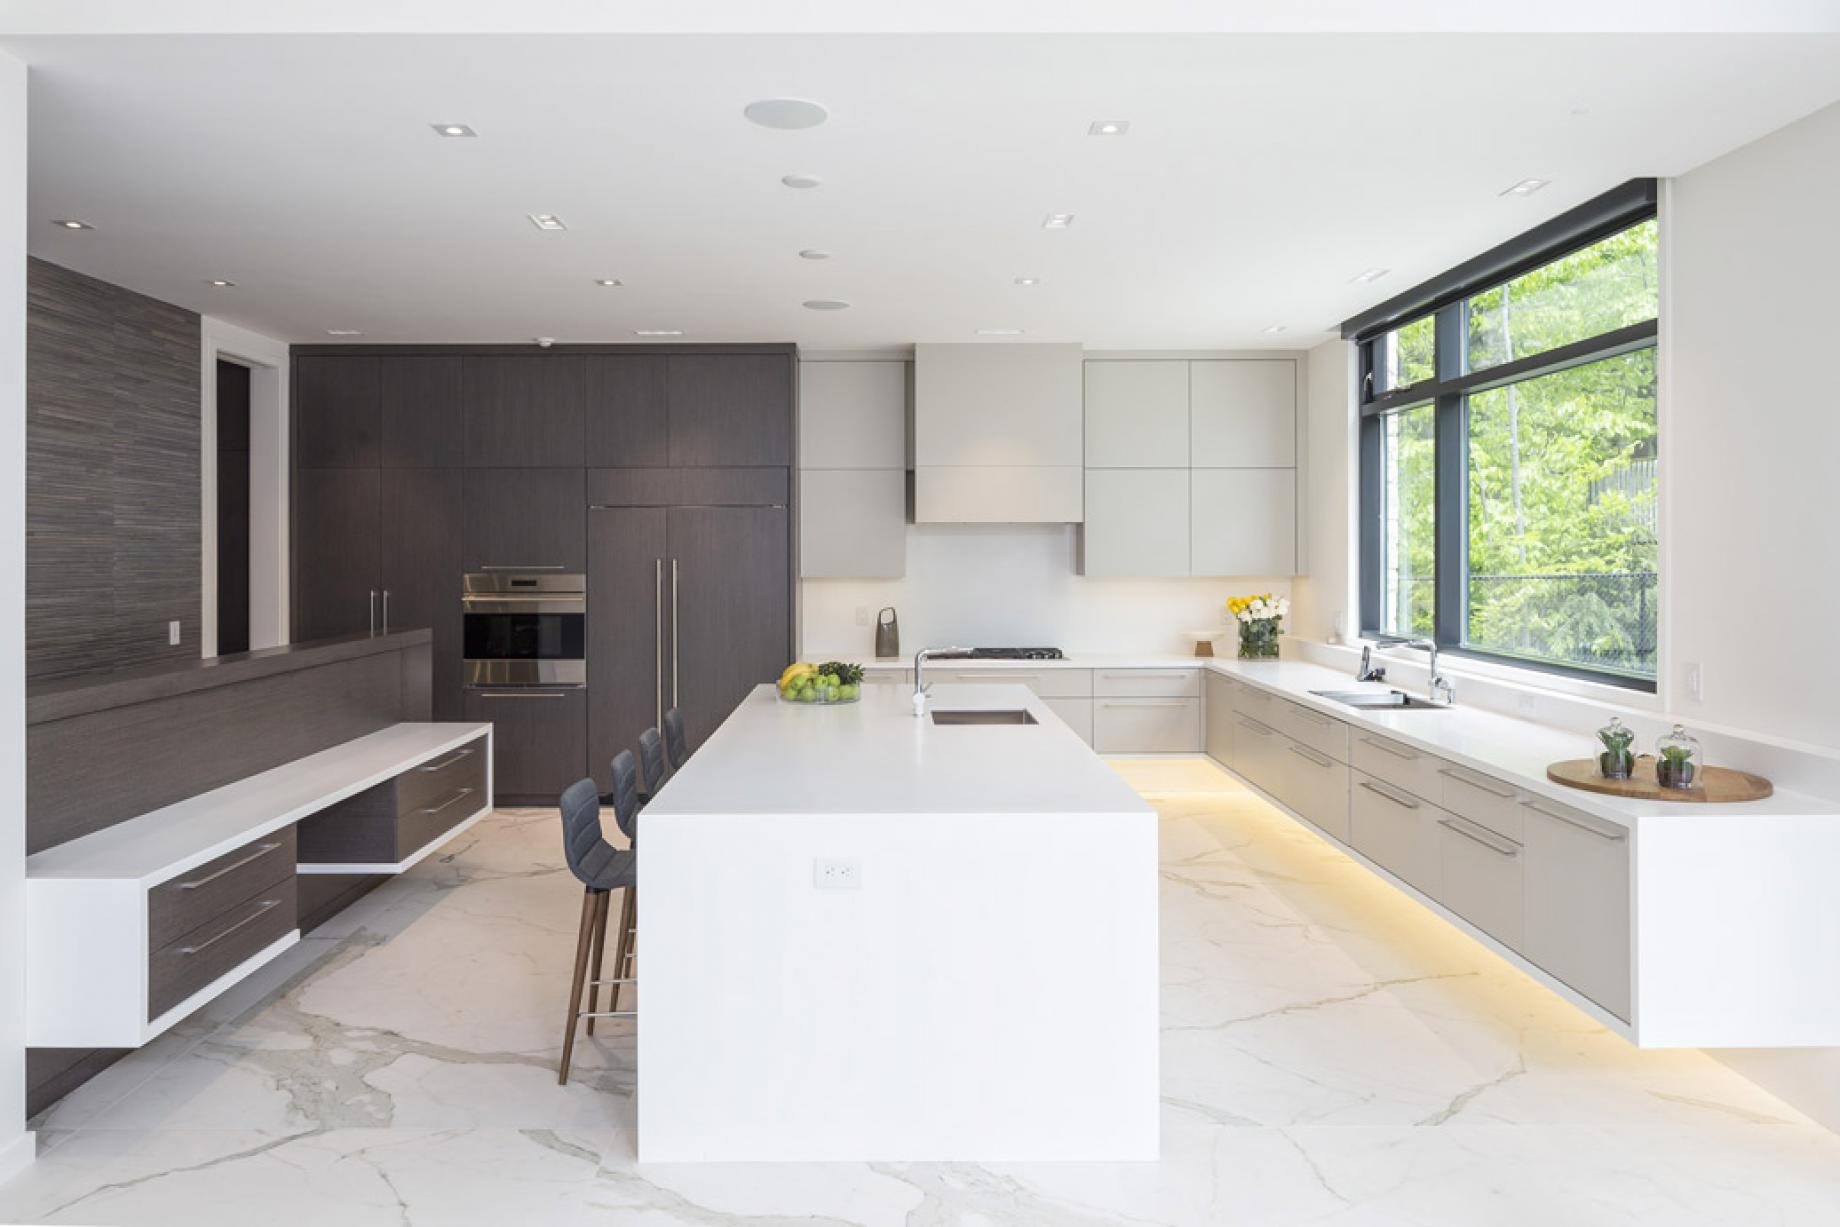 The kitchen in the Glass House features a huge island and modern appliances